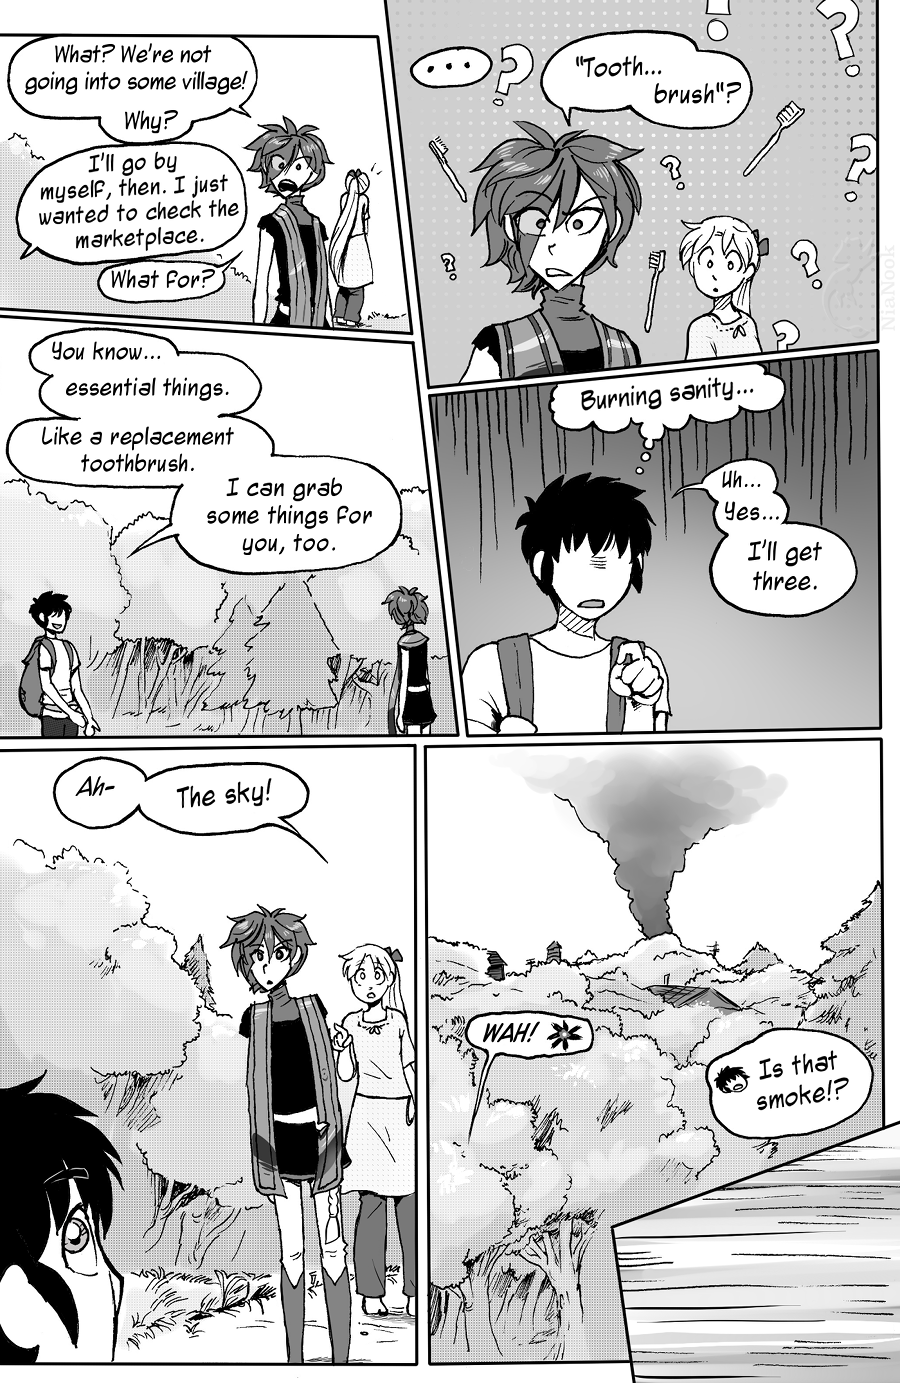 Page 3 (Book 3)